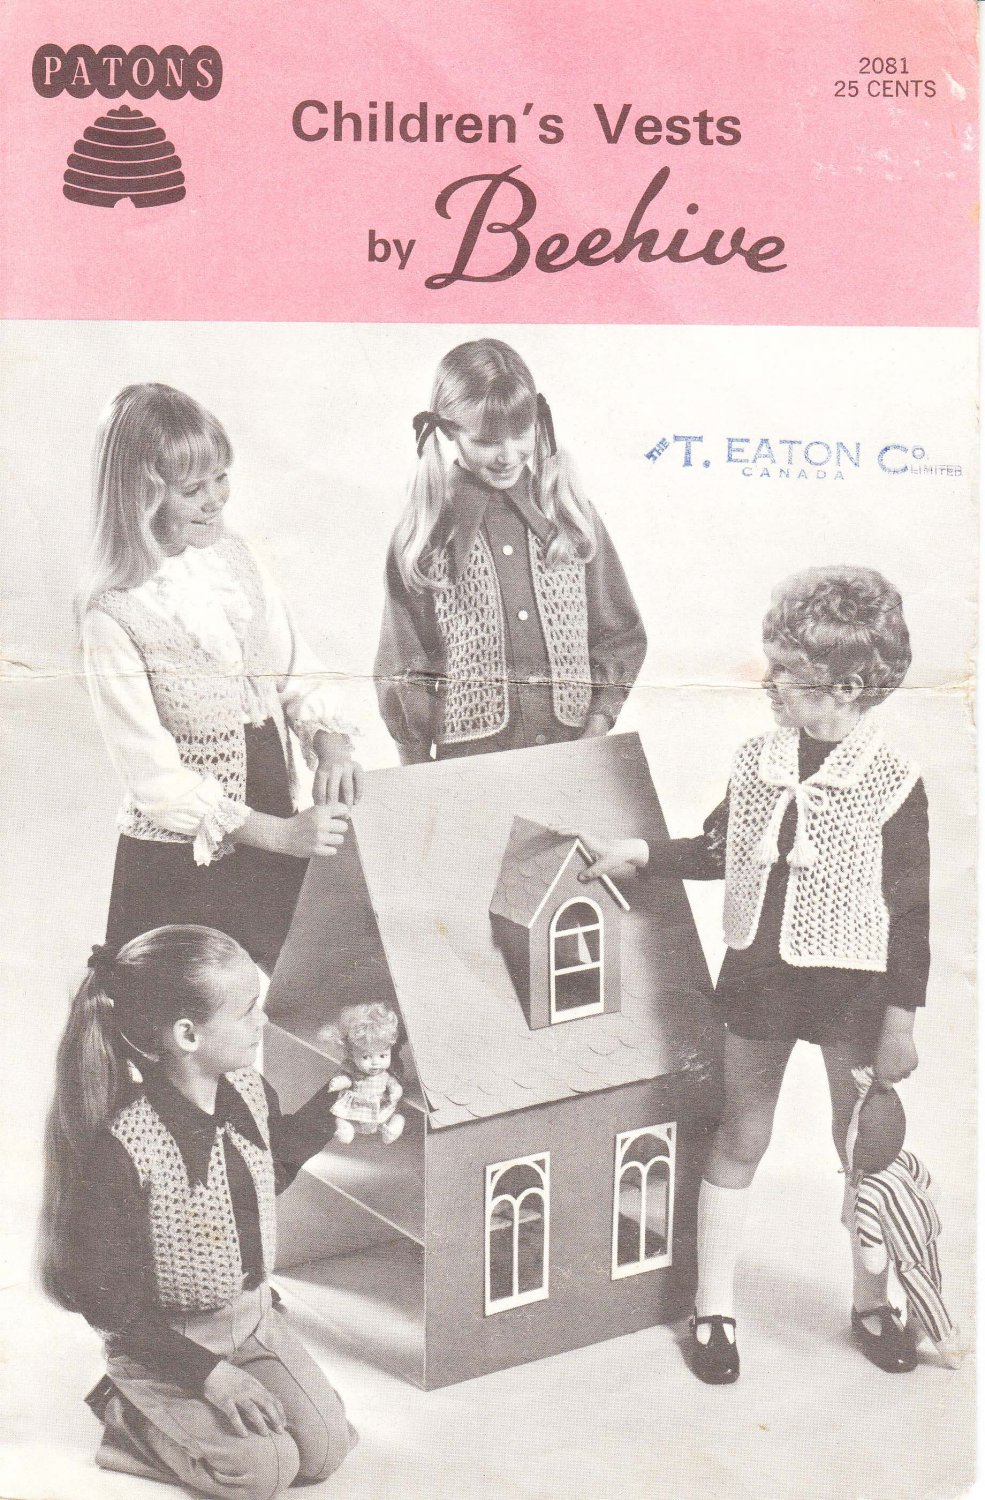 Patons Vintage Crochet and Knitting Pattern #2081 Children's Vests by Beehive